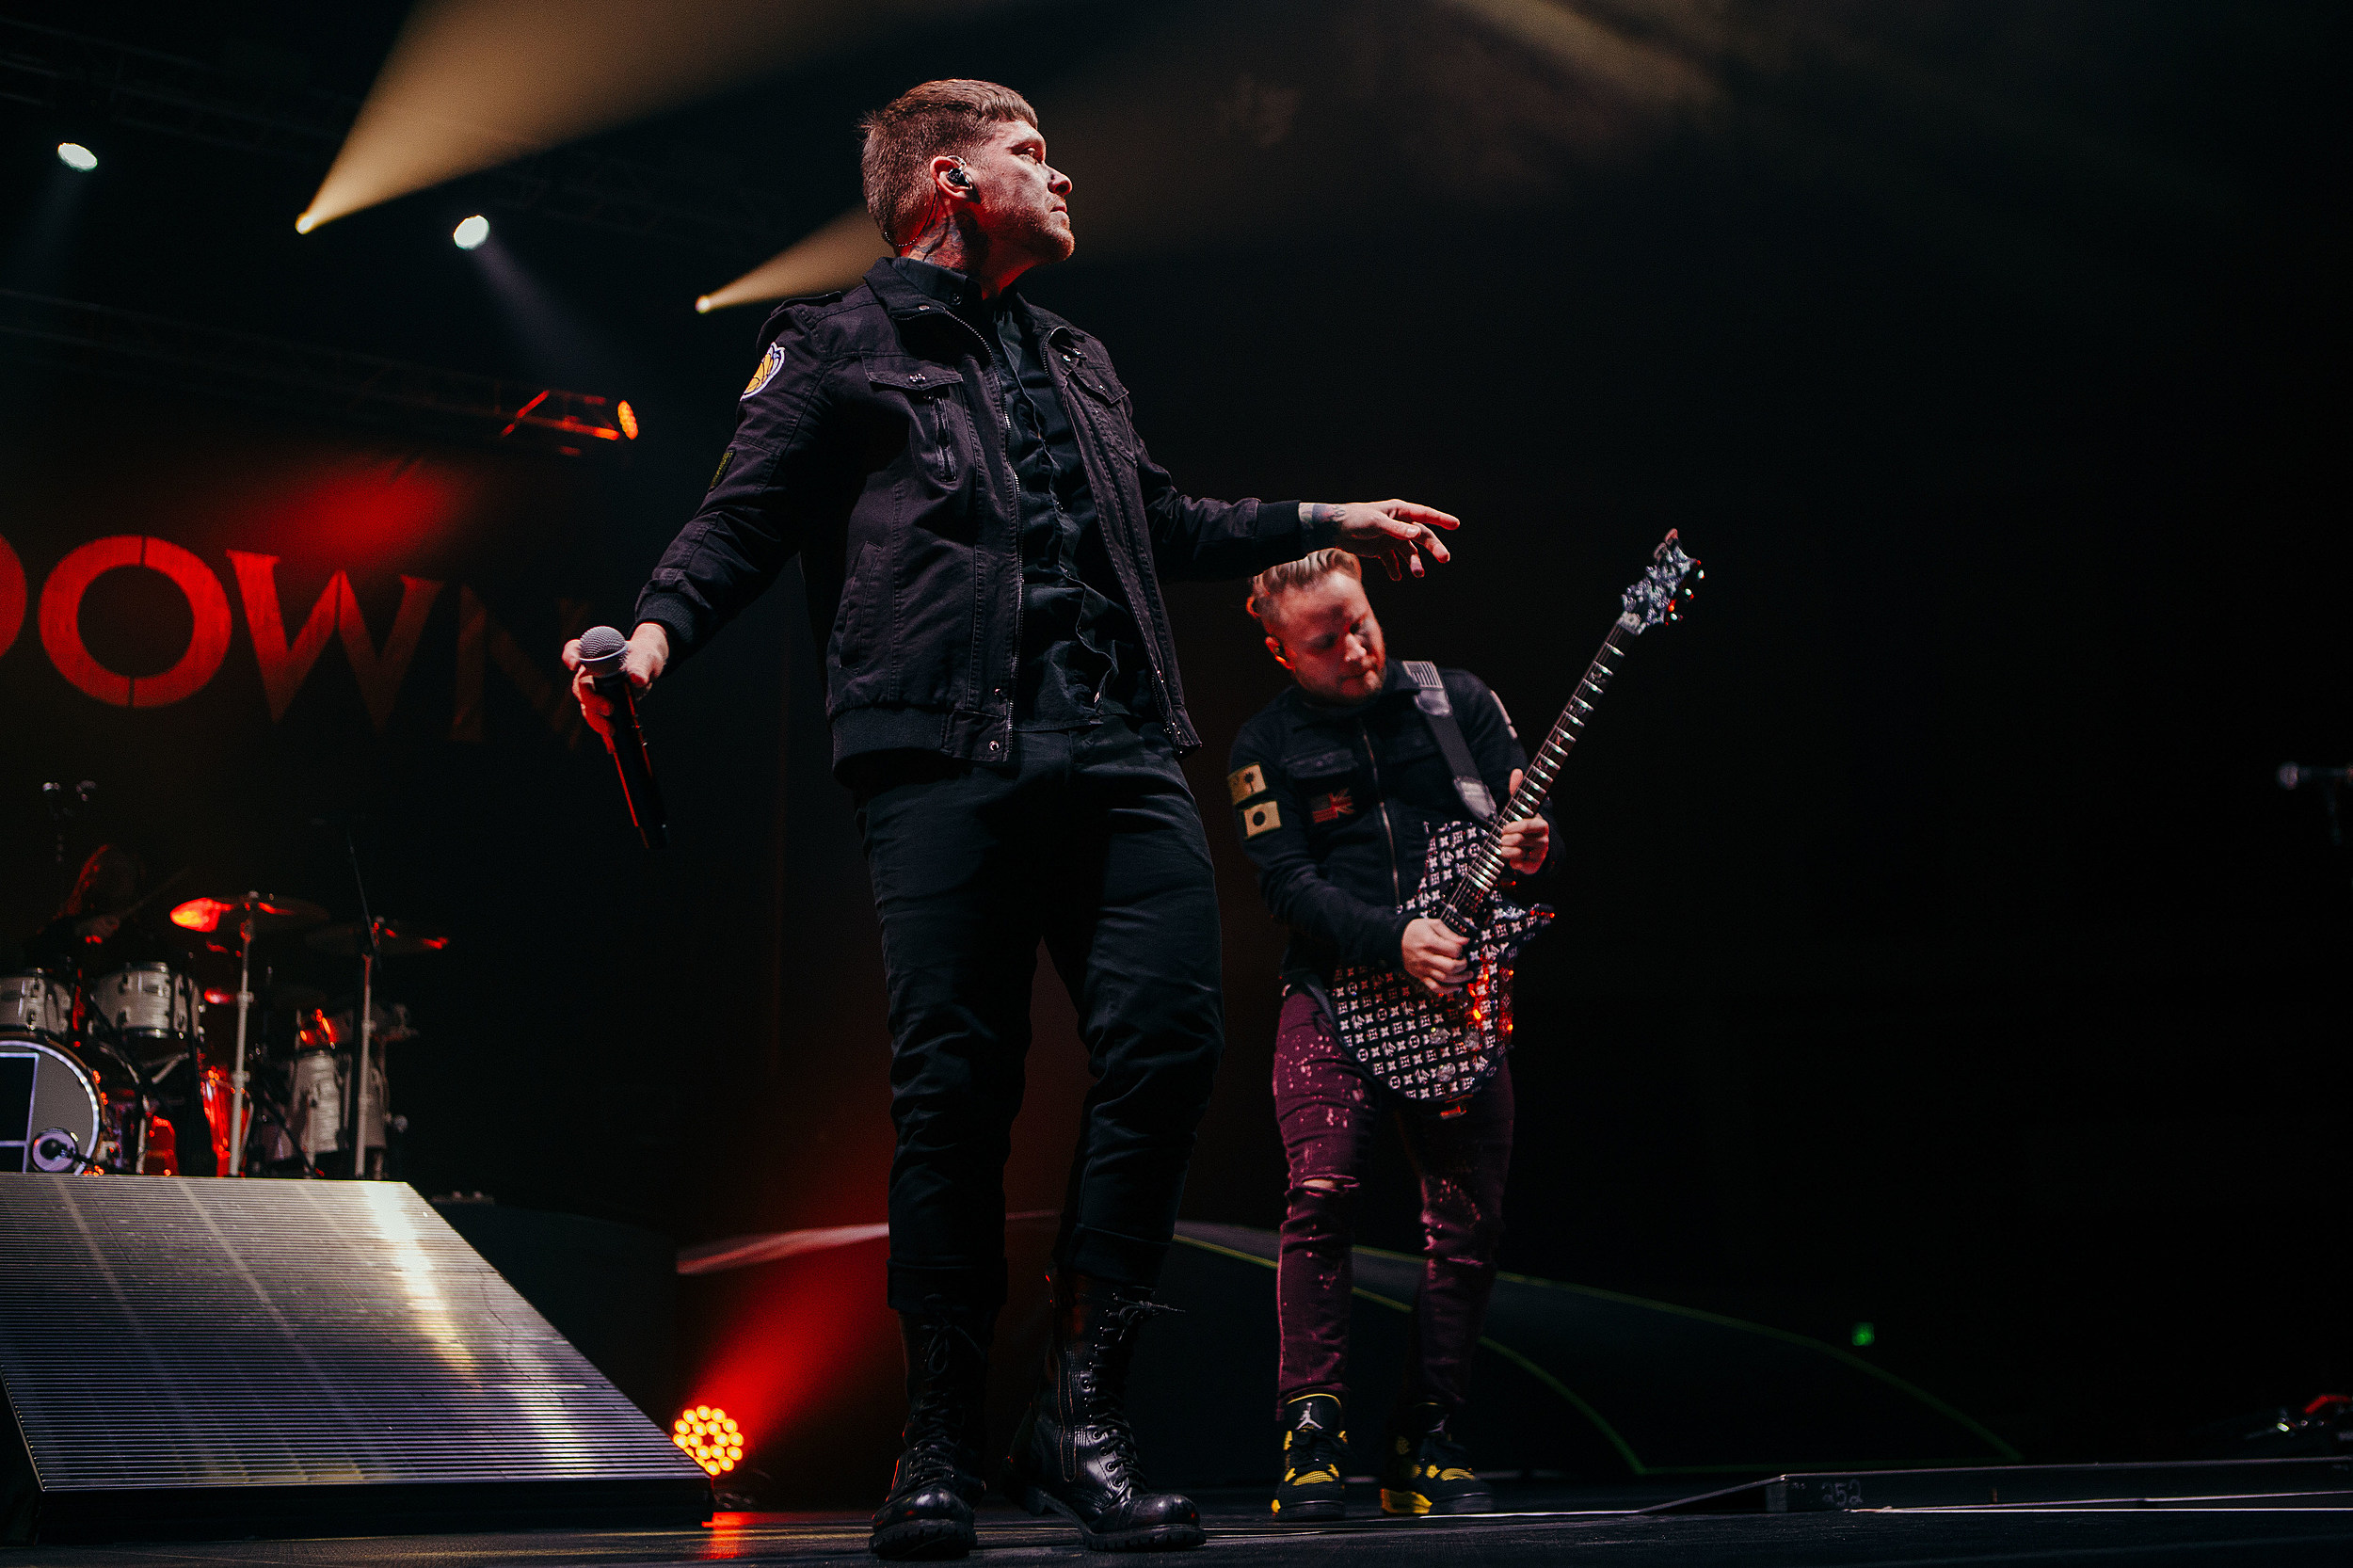 Icymi Shinedowns Complete Setlist From Saturday Night